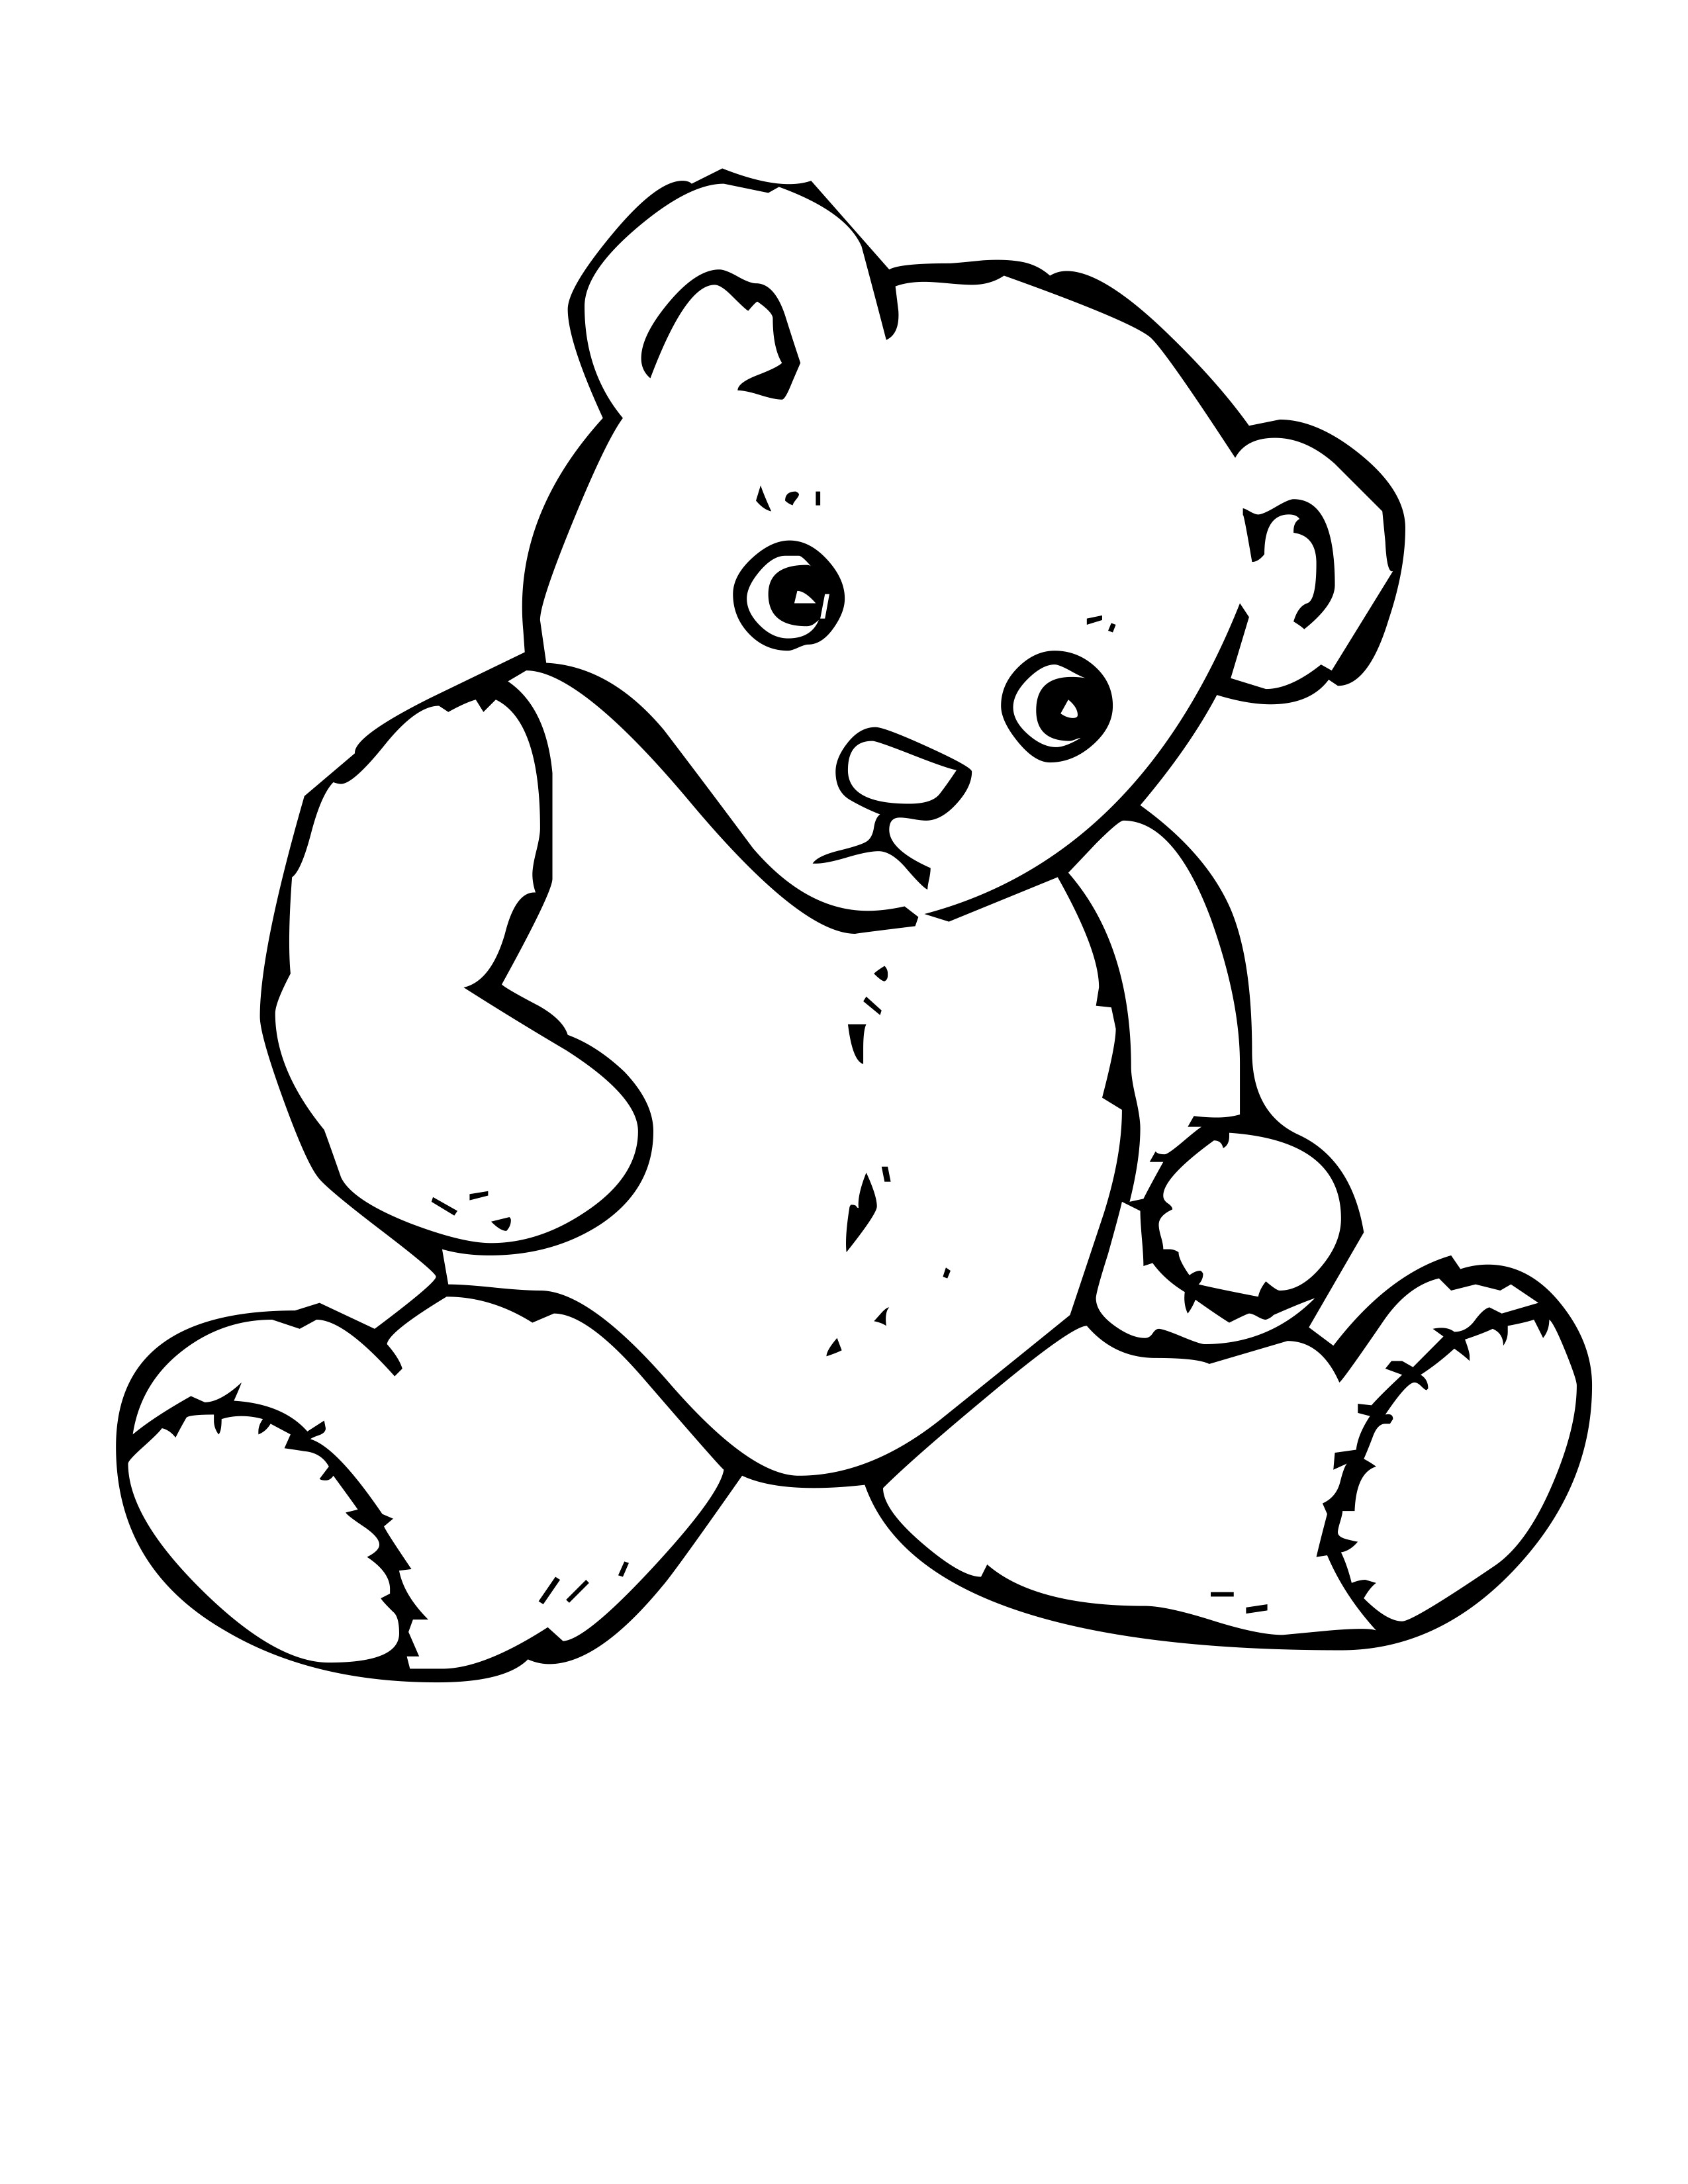 2550x3300 Elegant Teddy Bear Coloring Pages 13 In Line Drawings With Teddy